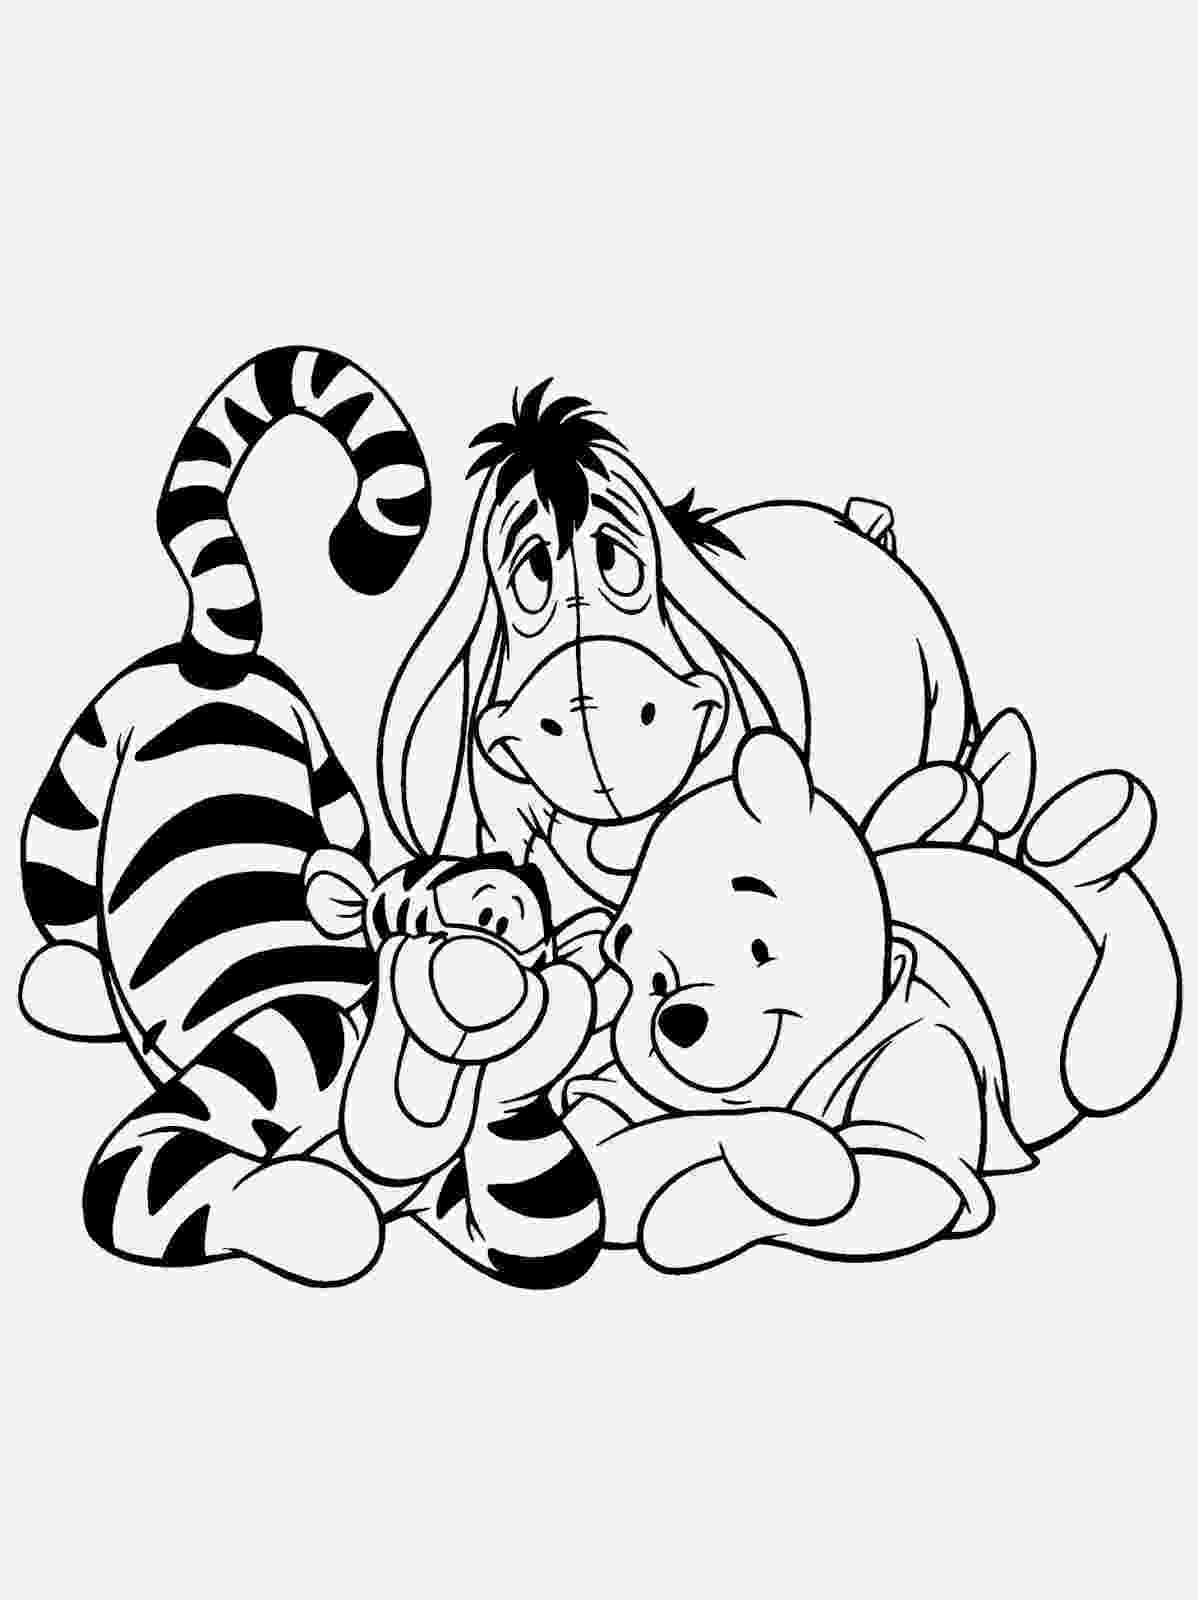 winnie pooh colouring pages winnie the pooh coloring sheets free coloring sheet pages pooh winnie colouring